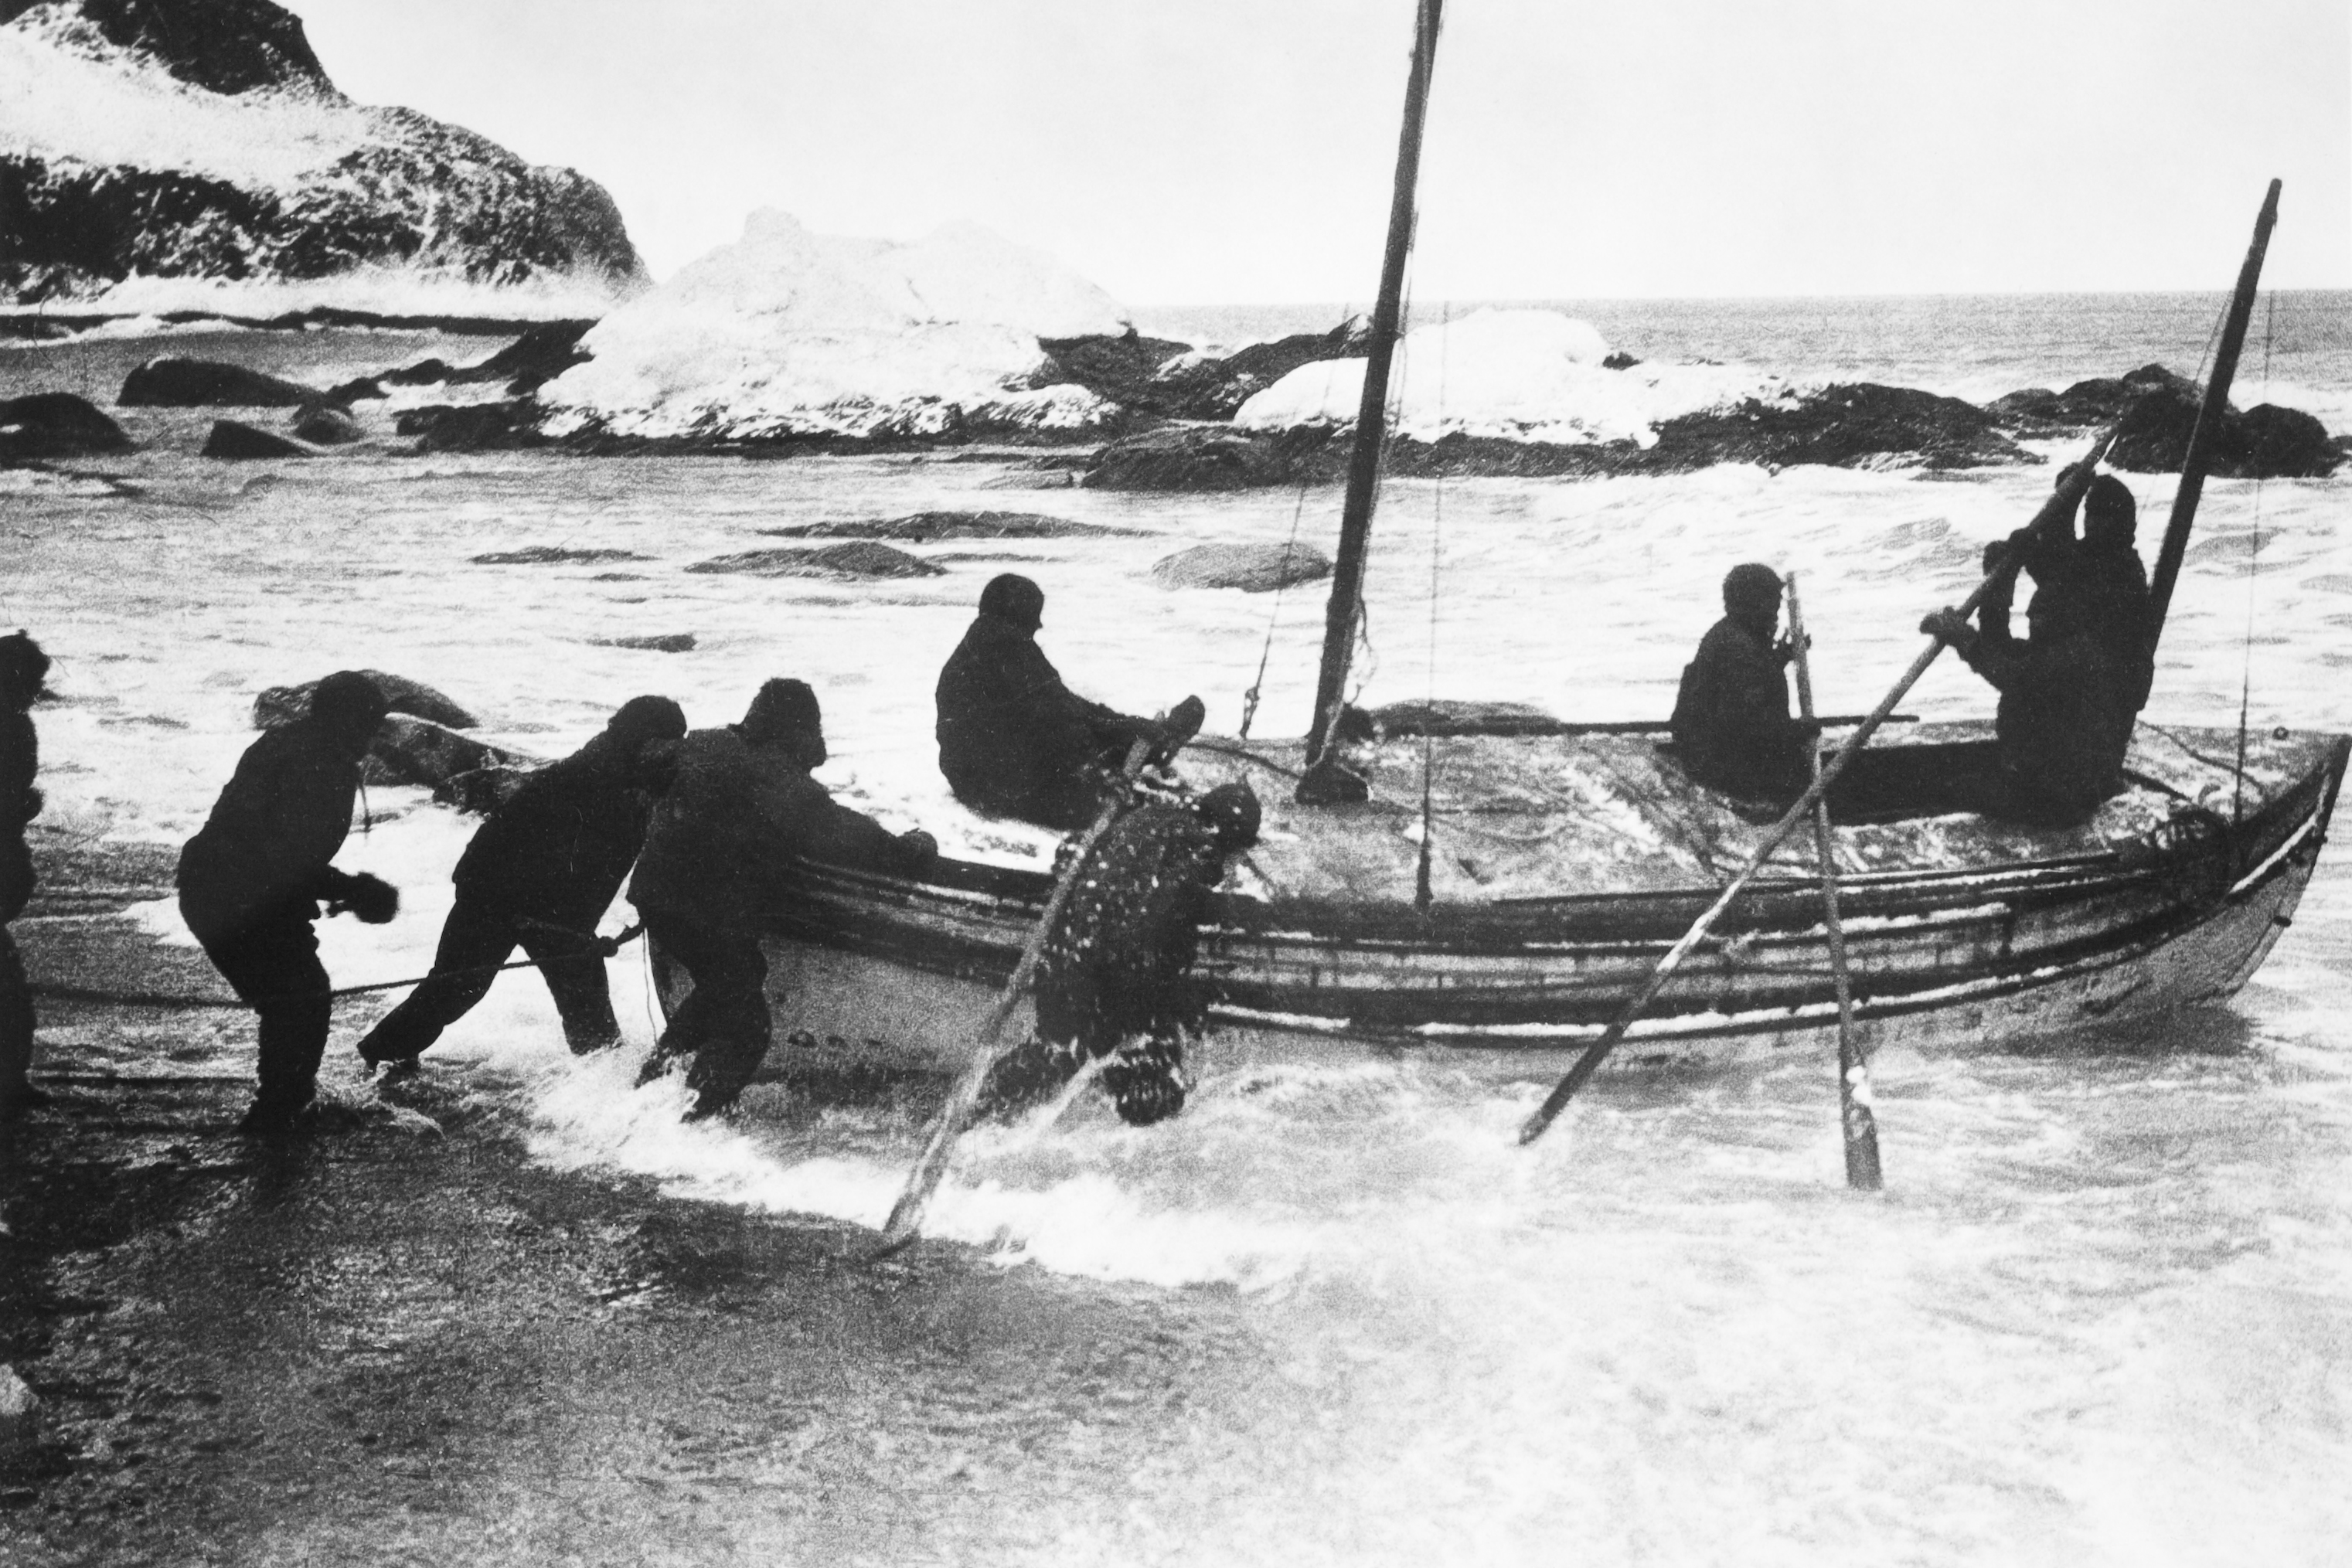 The greatest survival story ever undertaken: Sir Ernest Shackleton and five men embarked on an 800-mile voyage across the notoriously treacherous Southern Ocean in the lifeboat James Caird.